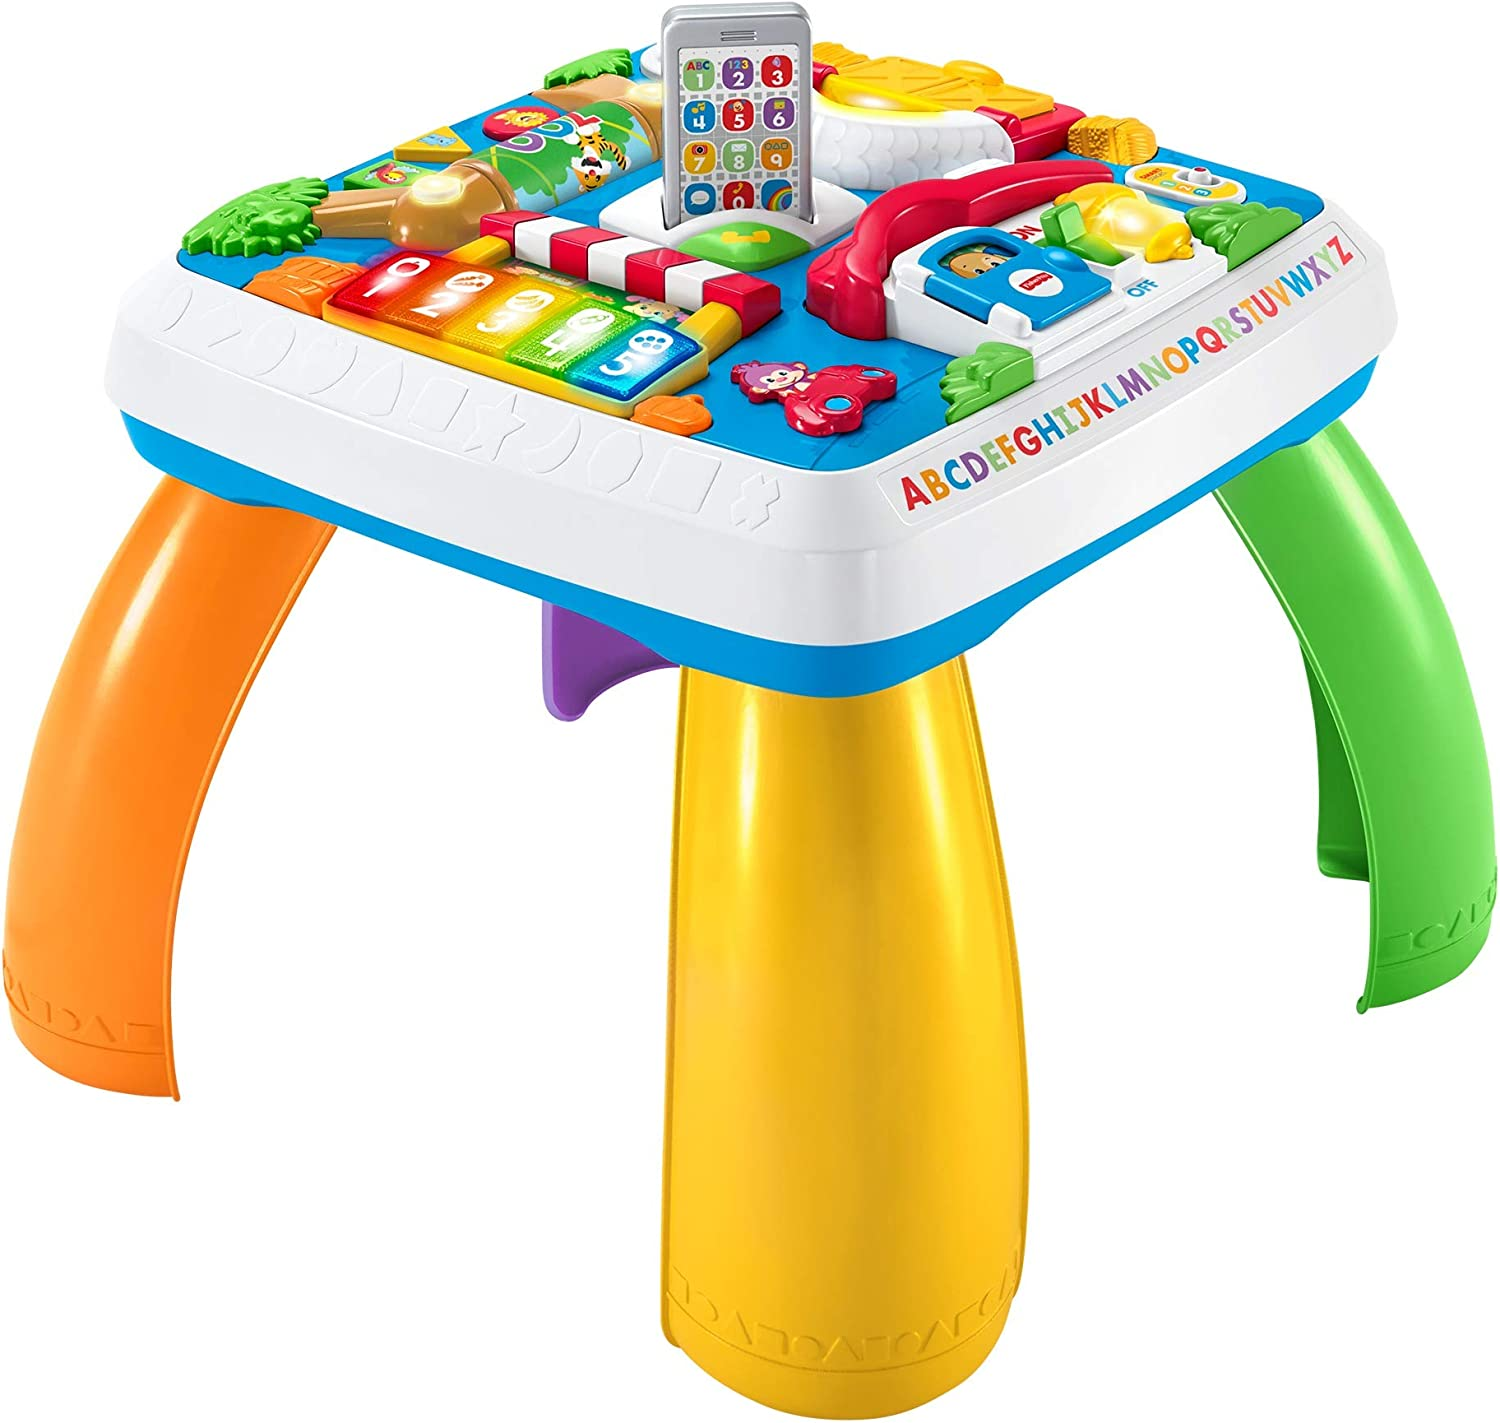 Top 7 Best Fisher-Price Laugh & Learn Reviews in 2020 5